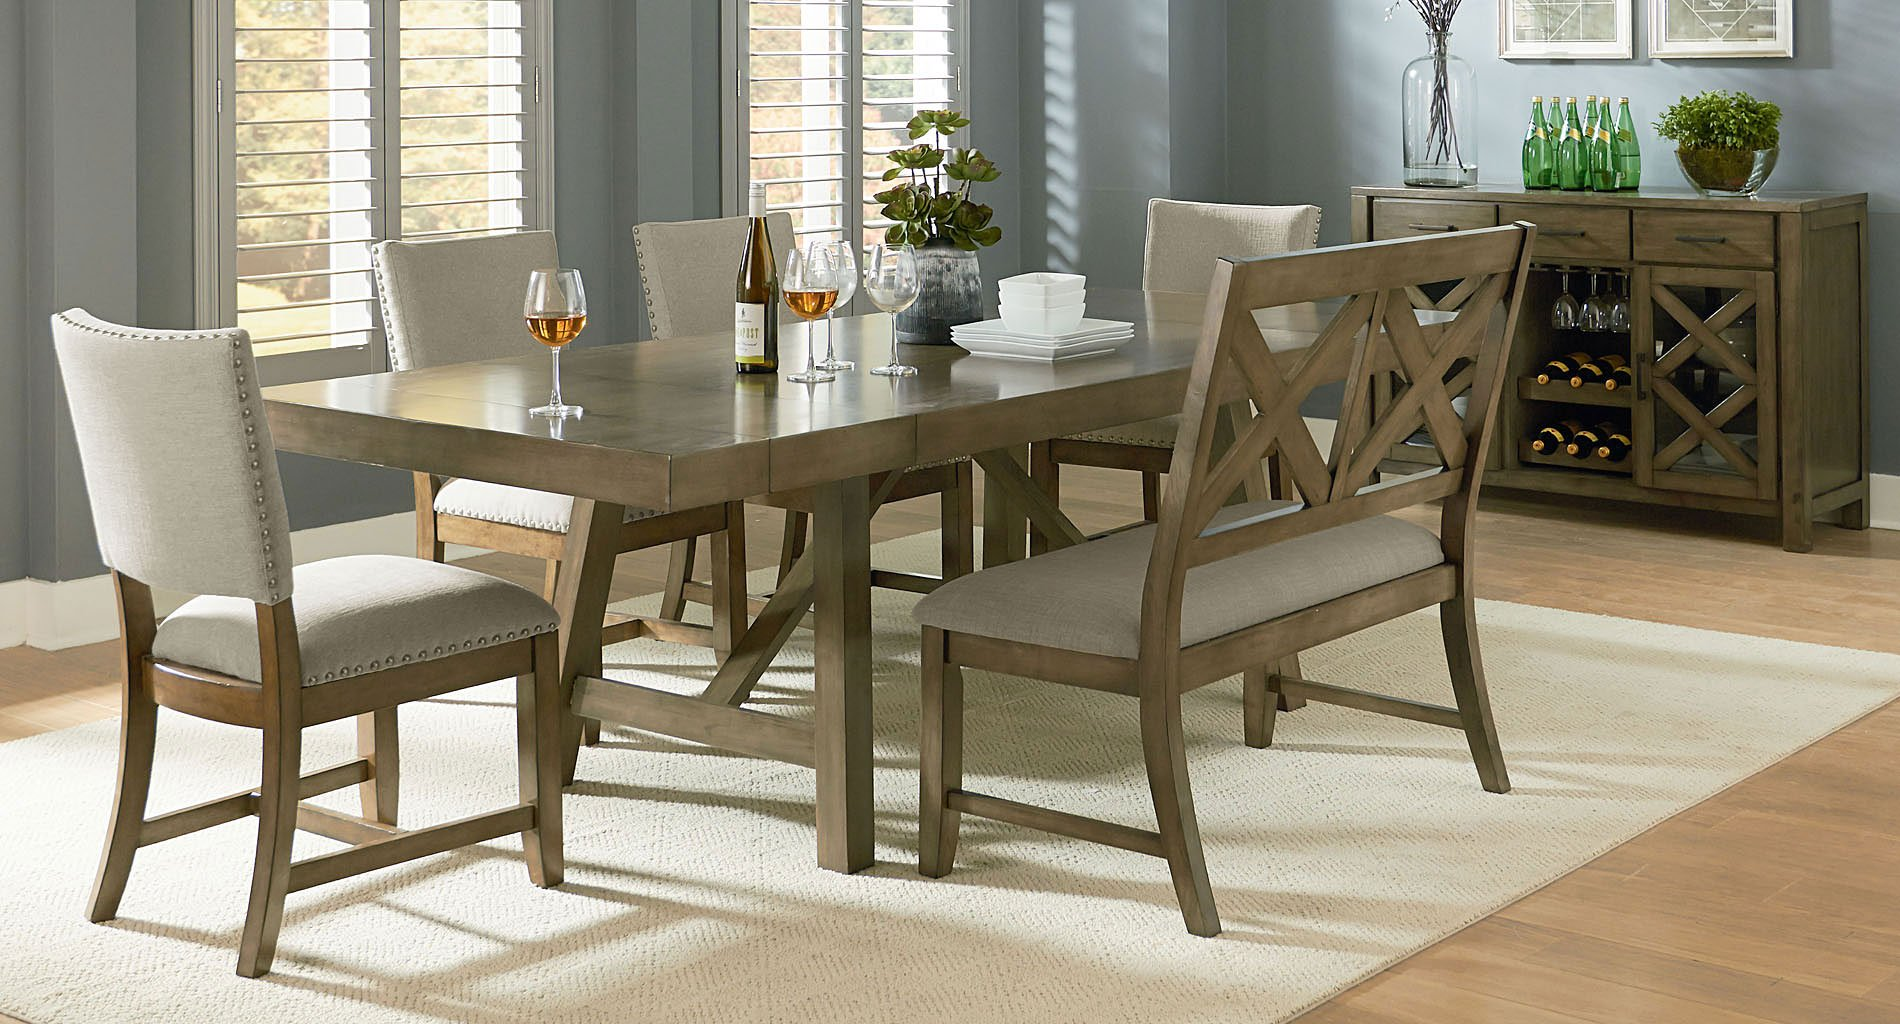 Omaha Dining Room Set W Bench And Upholstered Chairs Grey Standard Furniture Furniture Cart